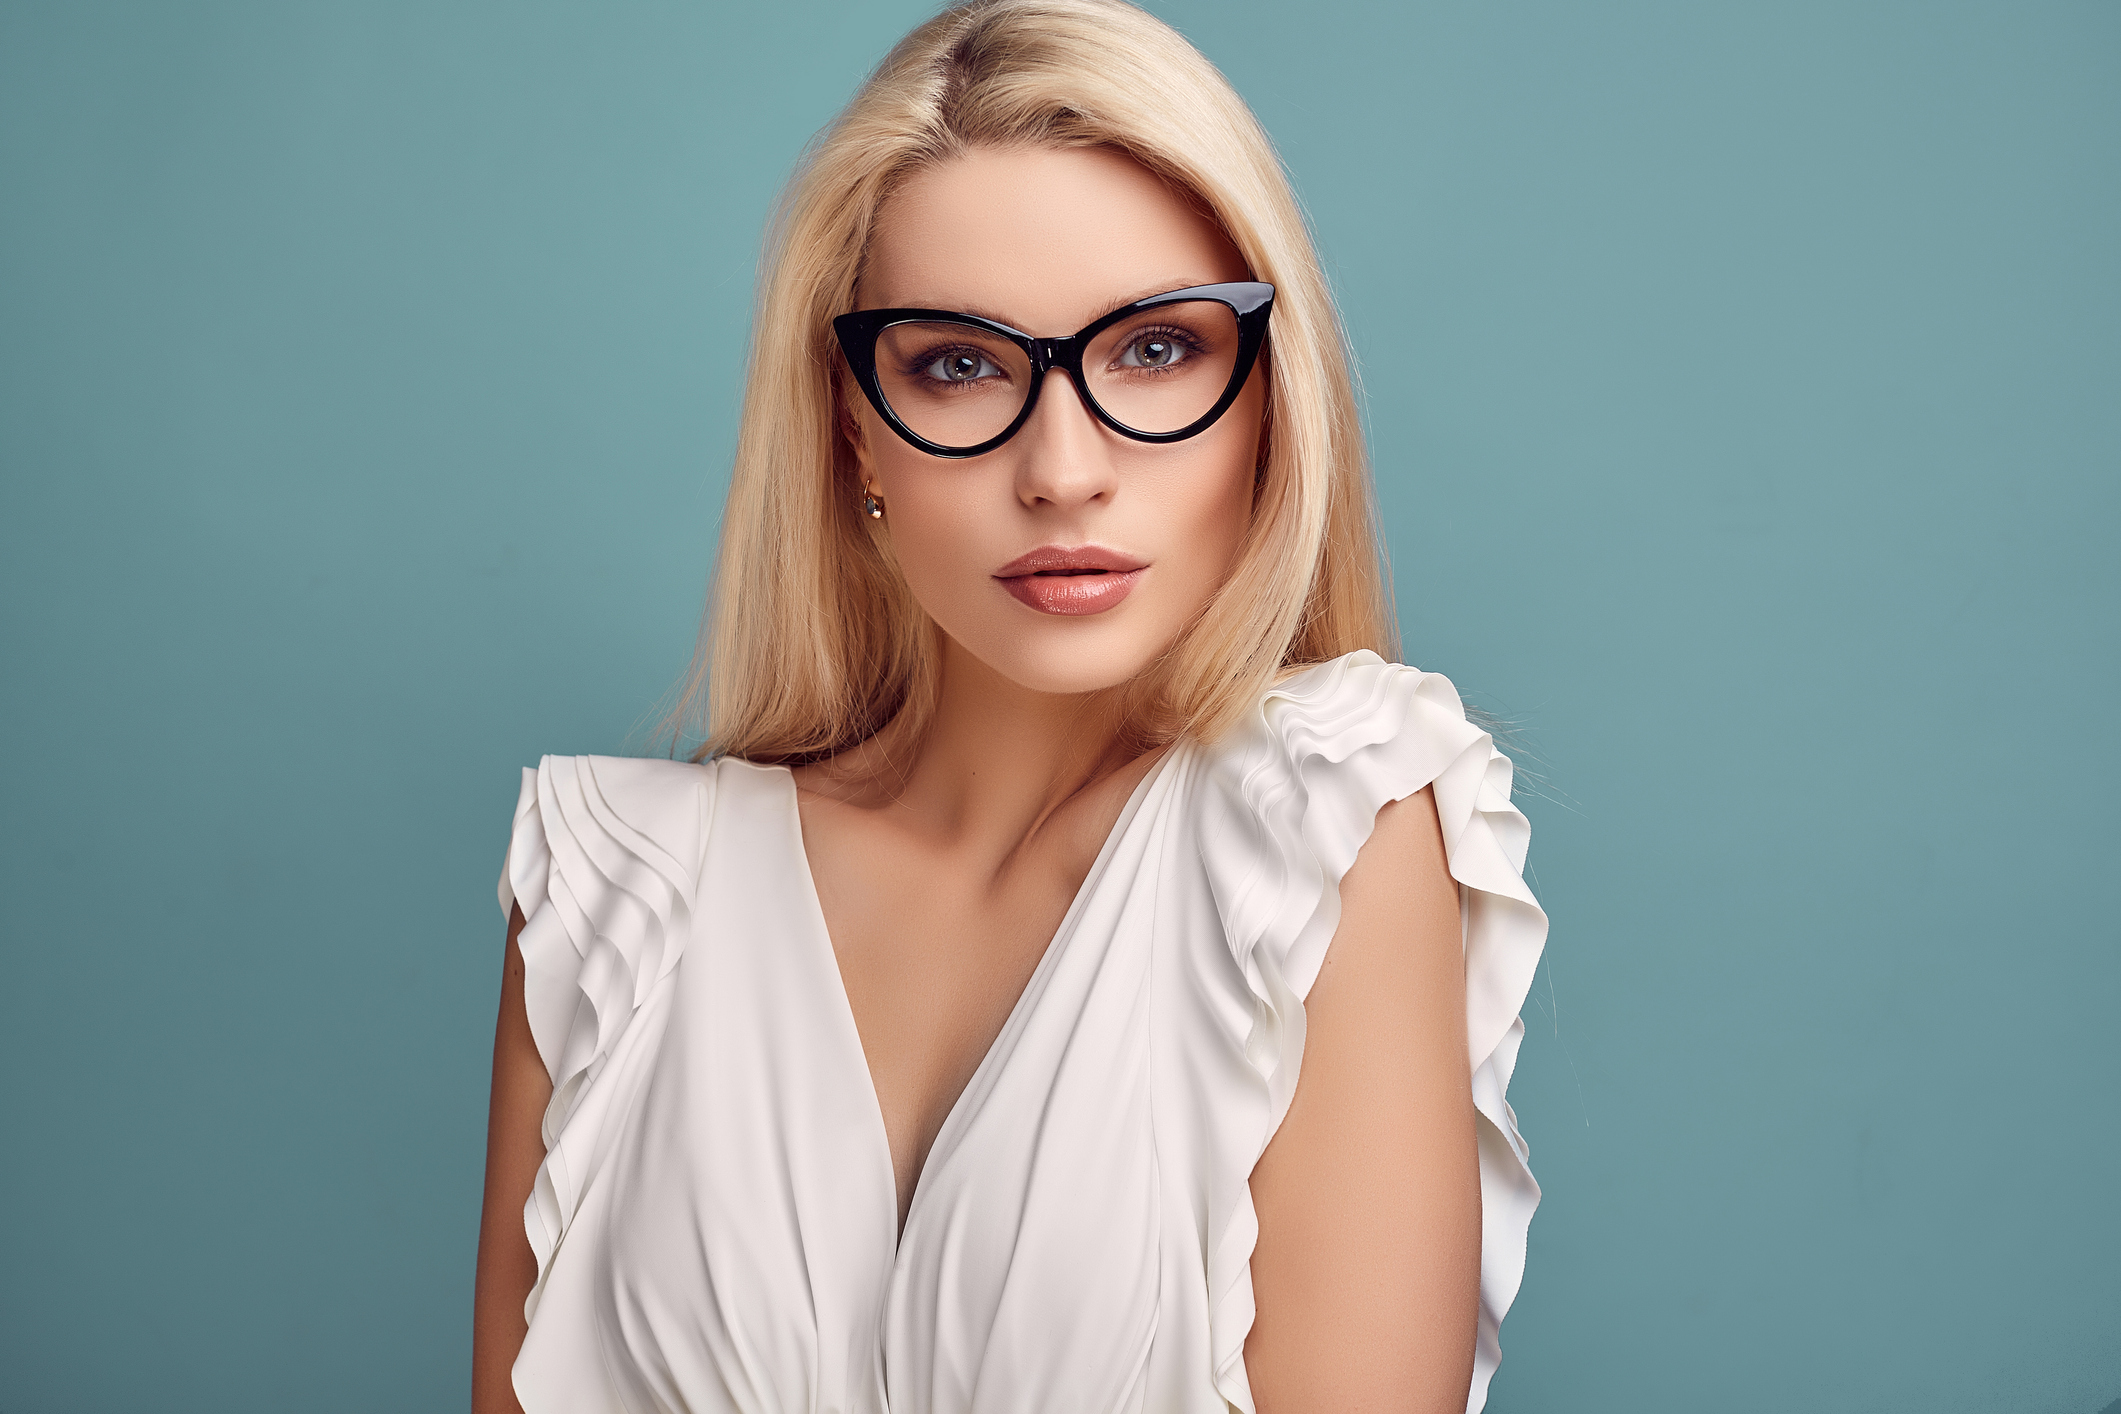 Portrait of gorgeous sensual blonde woman in fashion white dress and glasses posing on blue background in studio